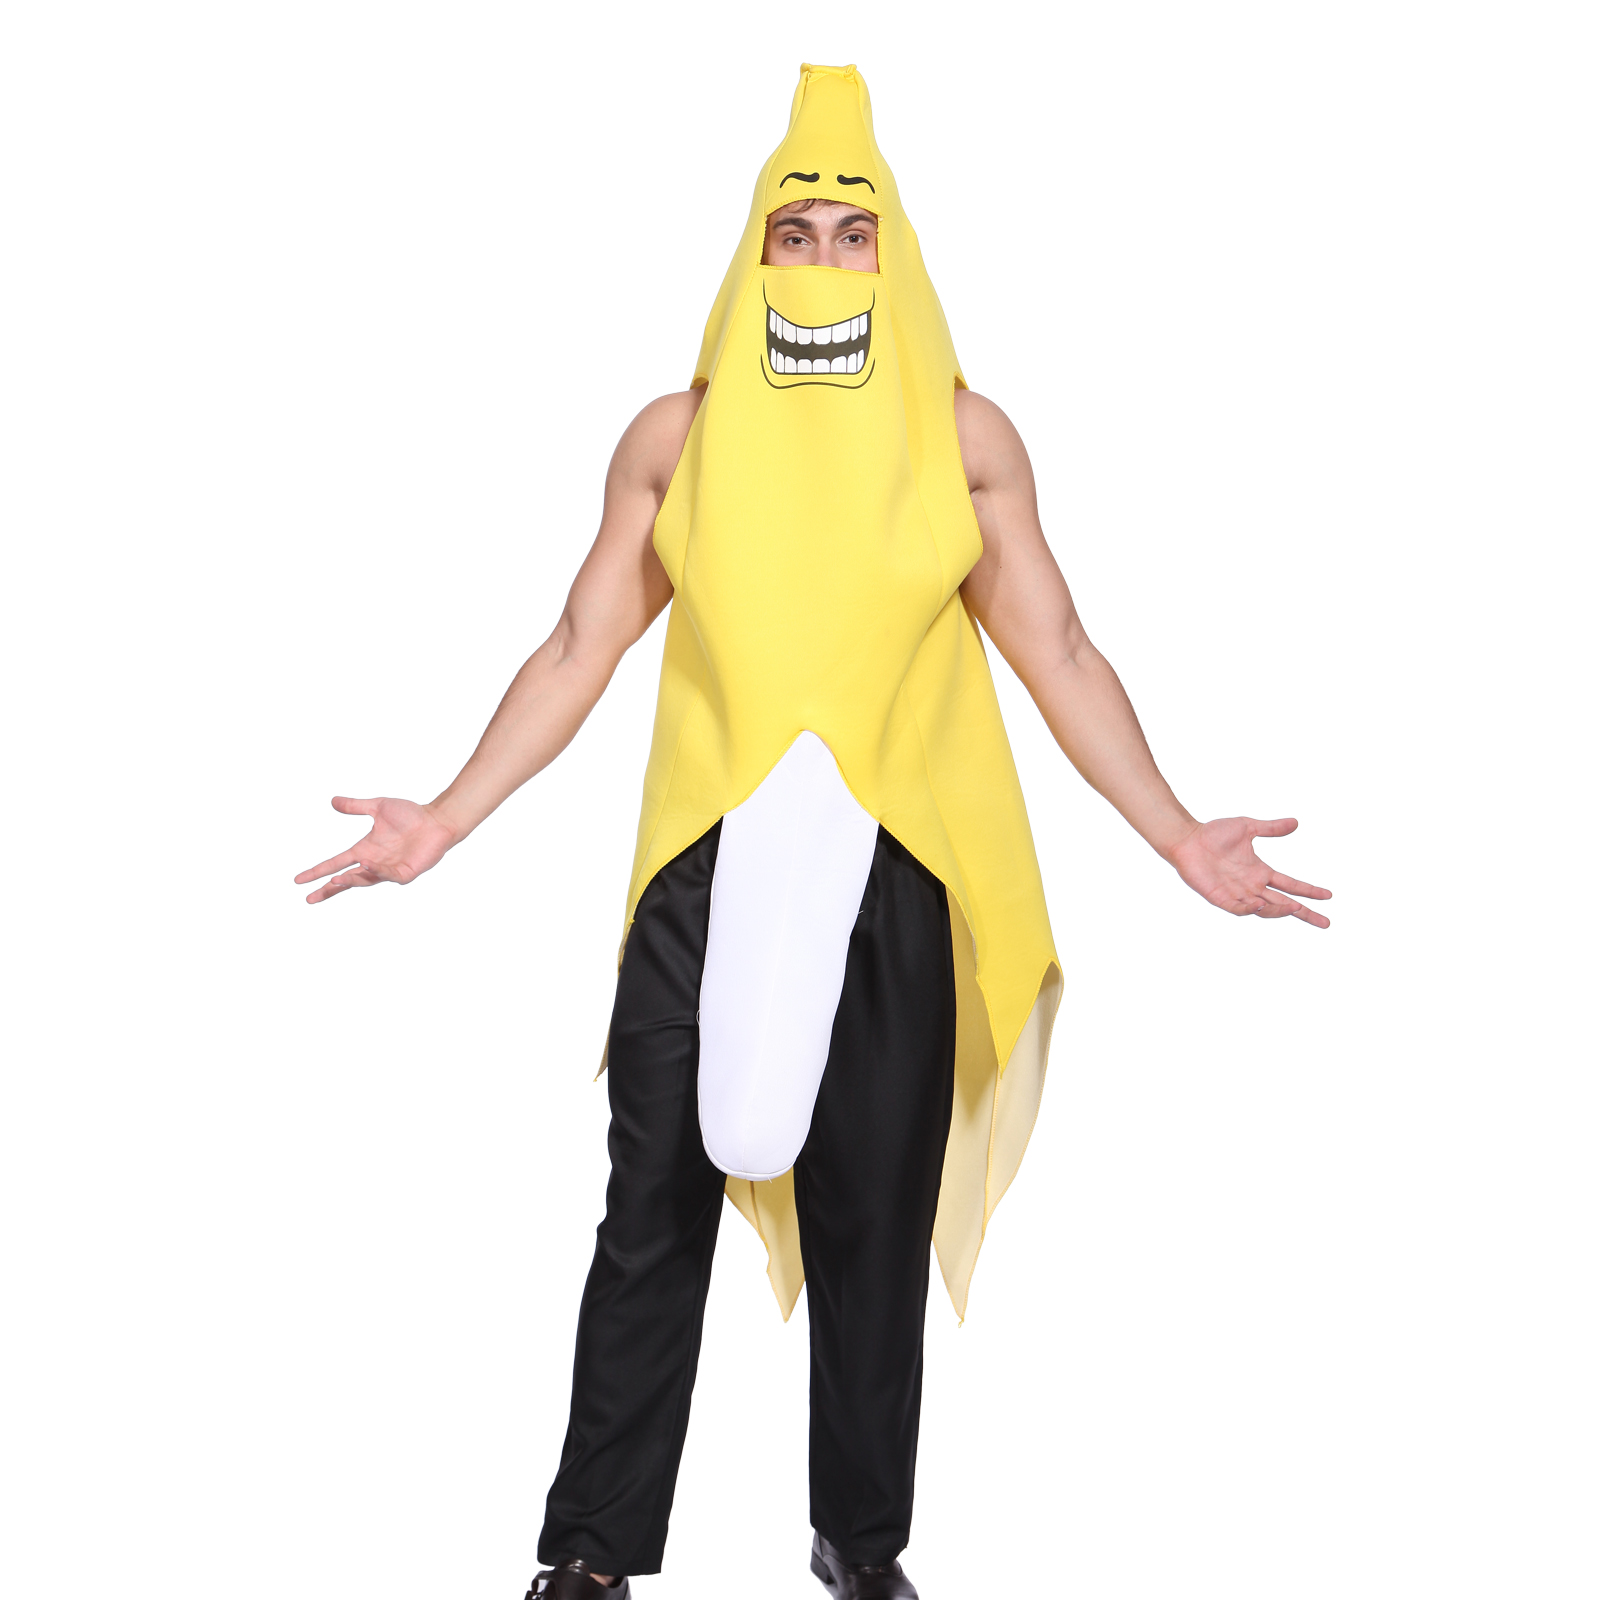 2 Type Adult Banana Costume Carnival Stag Hen Do Cosplay Party Funny Fancy Dress | eBay  sc 1 st  eBay & 2 Type Adult Banana Costume Carnival Stag Hen Do Cosplay Party Funny ...